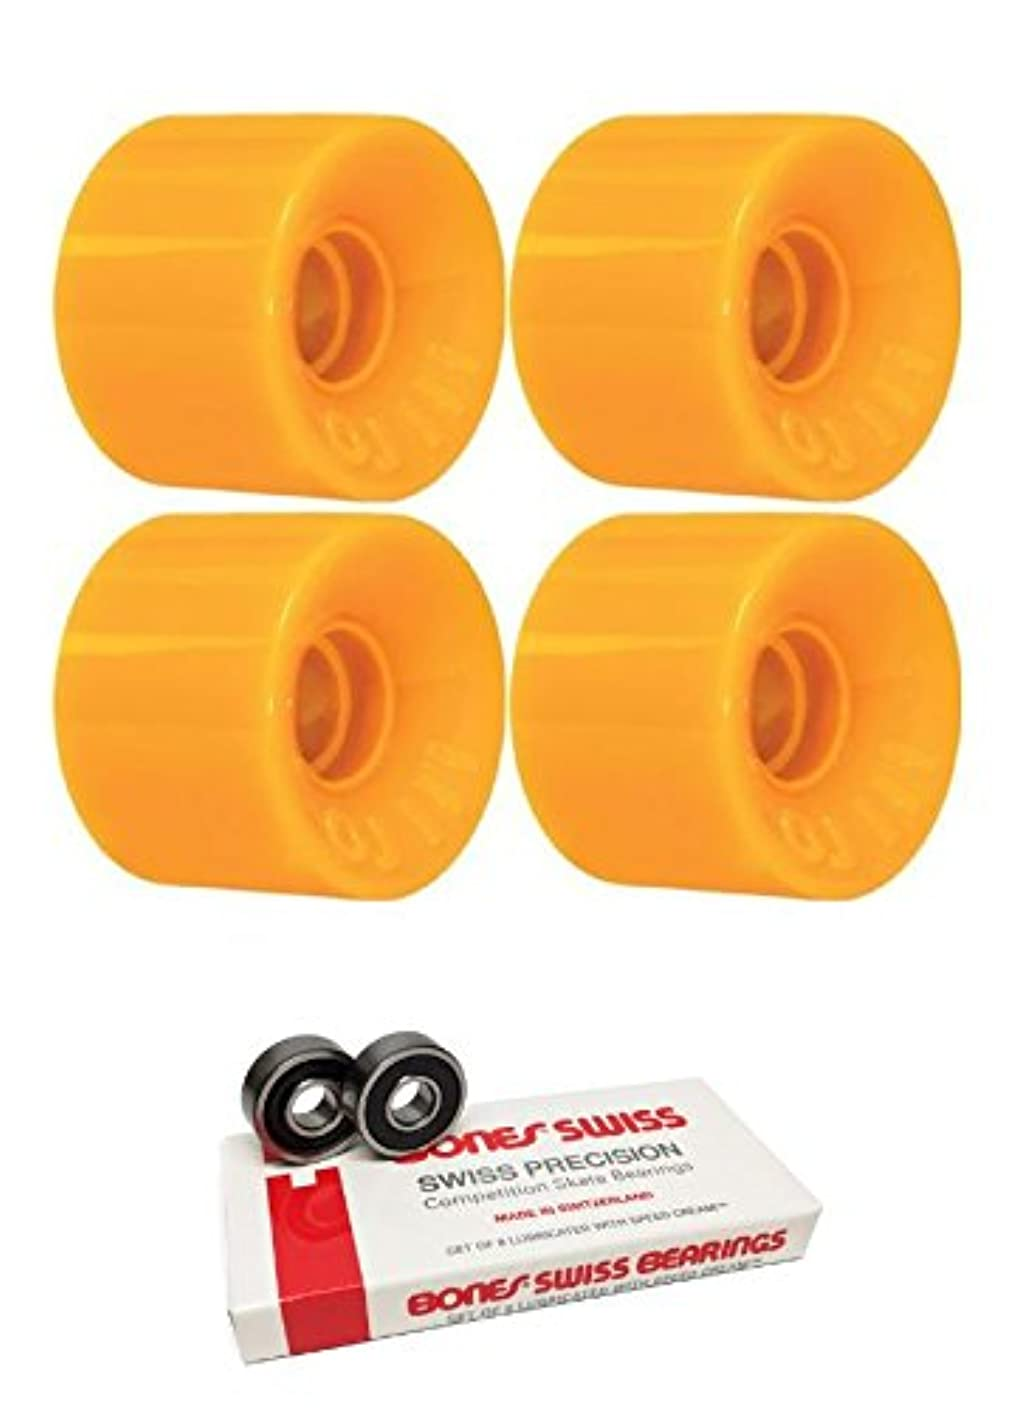 大砲くるみ負55 mm OJ Wheels Hot Juice MiniスケートボードWheels with Bones Bearings – 8 mm Bones Swiss Skateboard Bearings – 2アイテムのバンドル